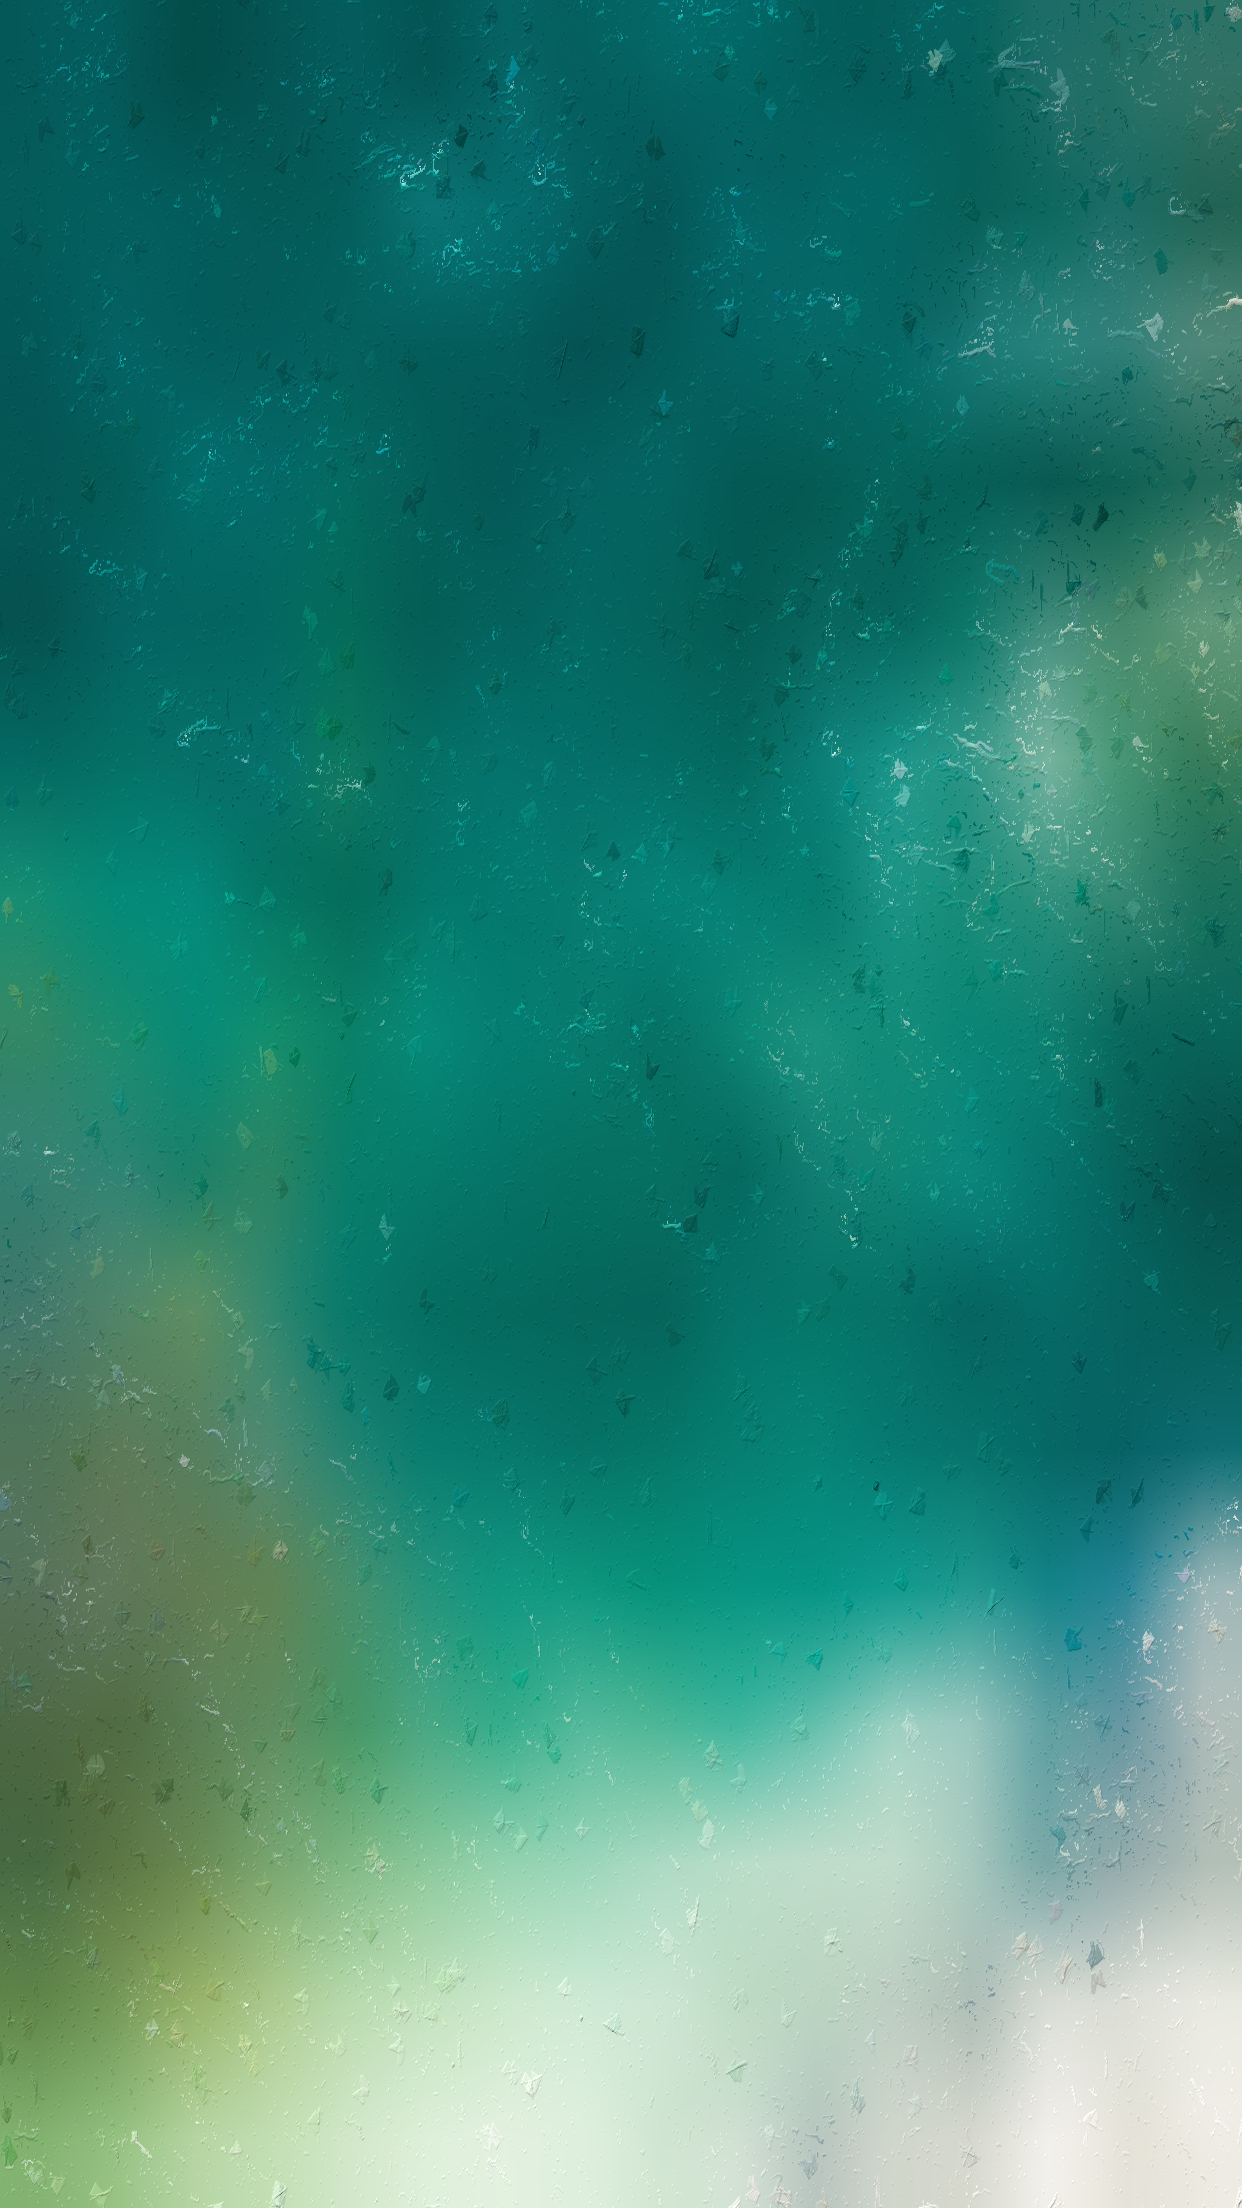 iOS 10 Green.png